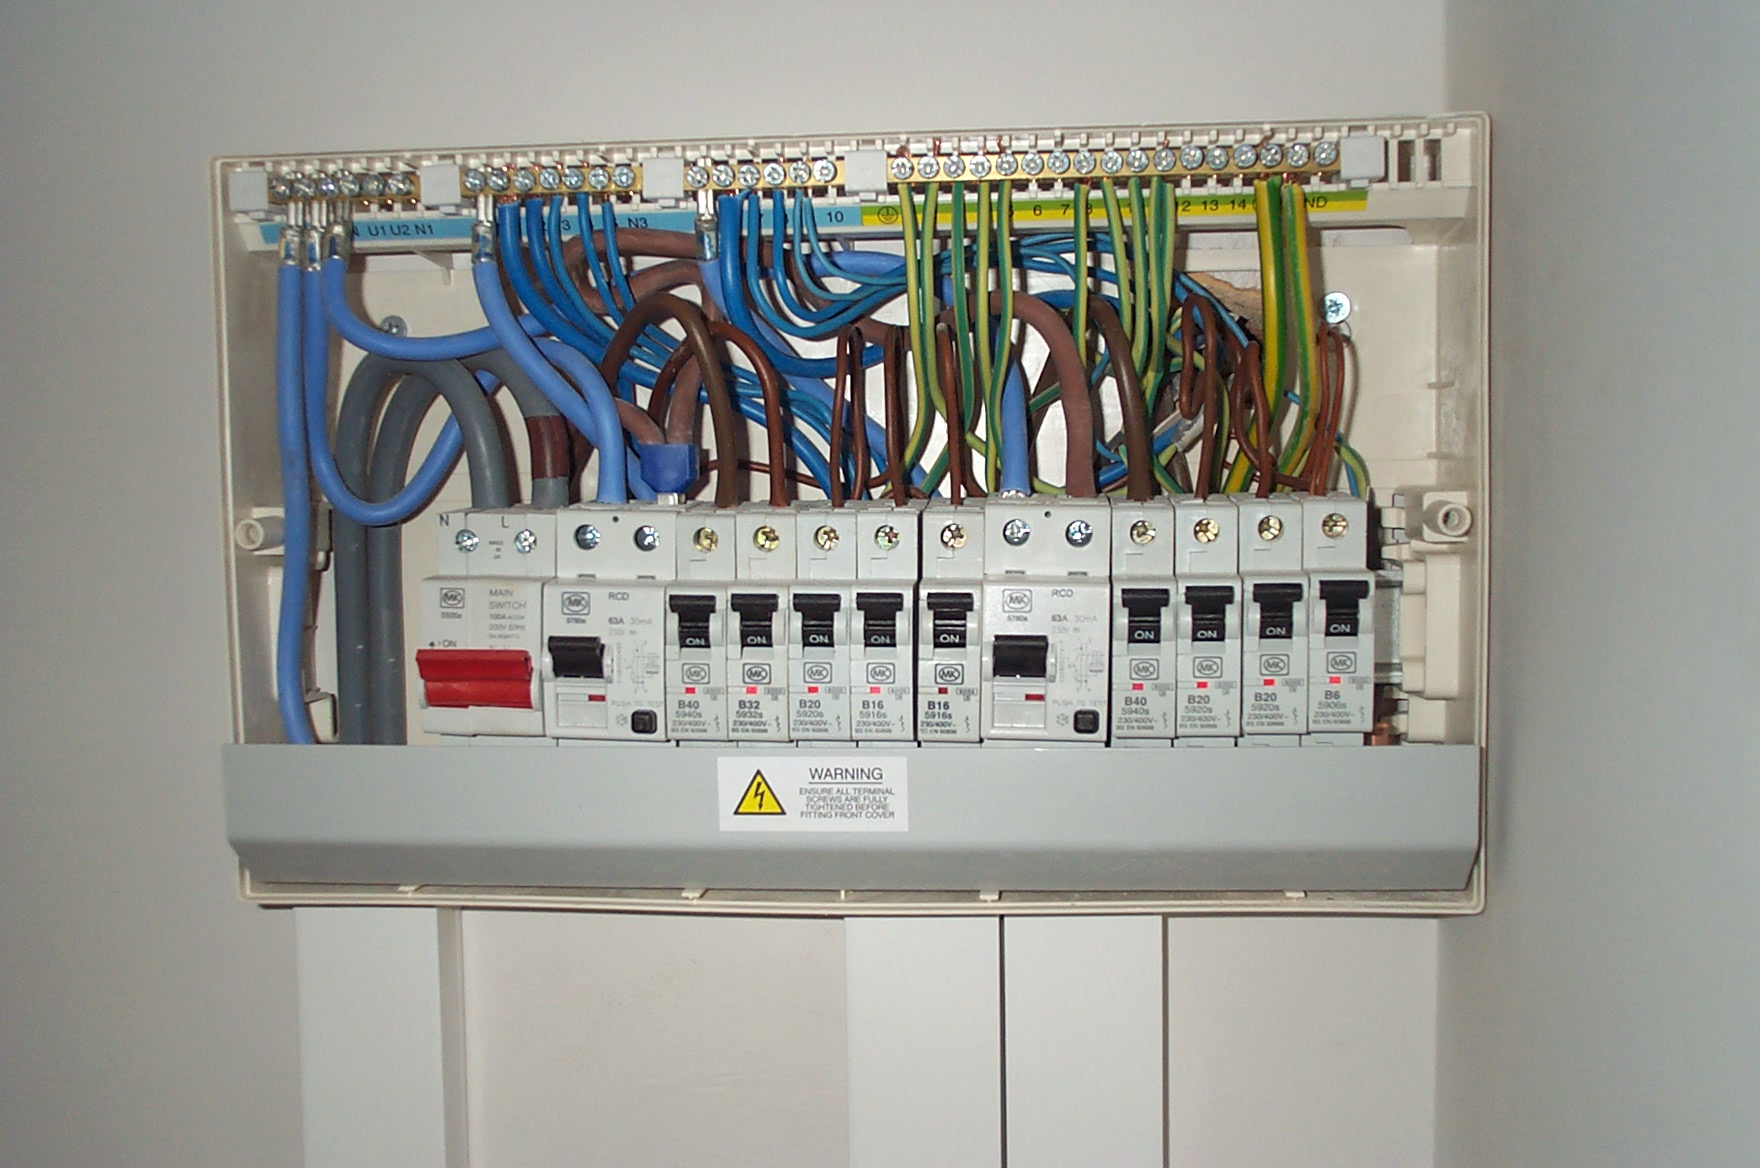 hight resolution of office fuse box wiring diagram load office fuse box office fuse box